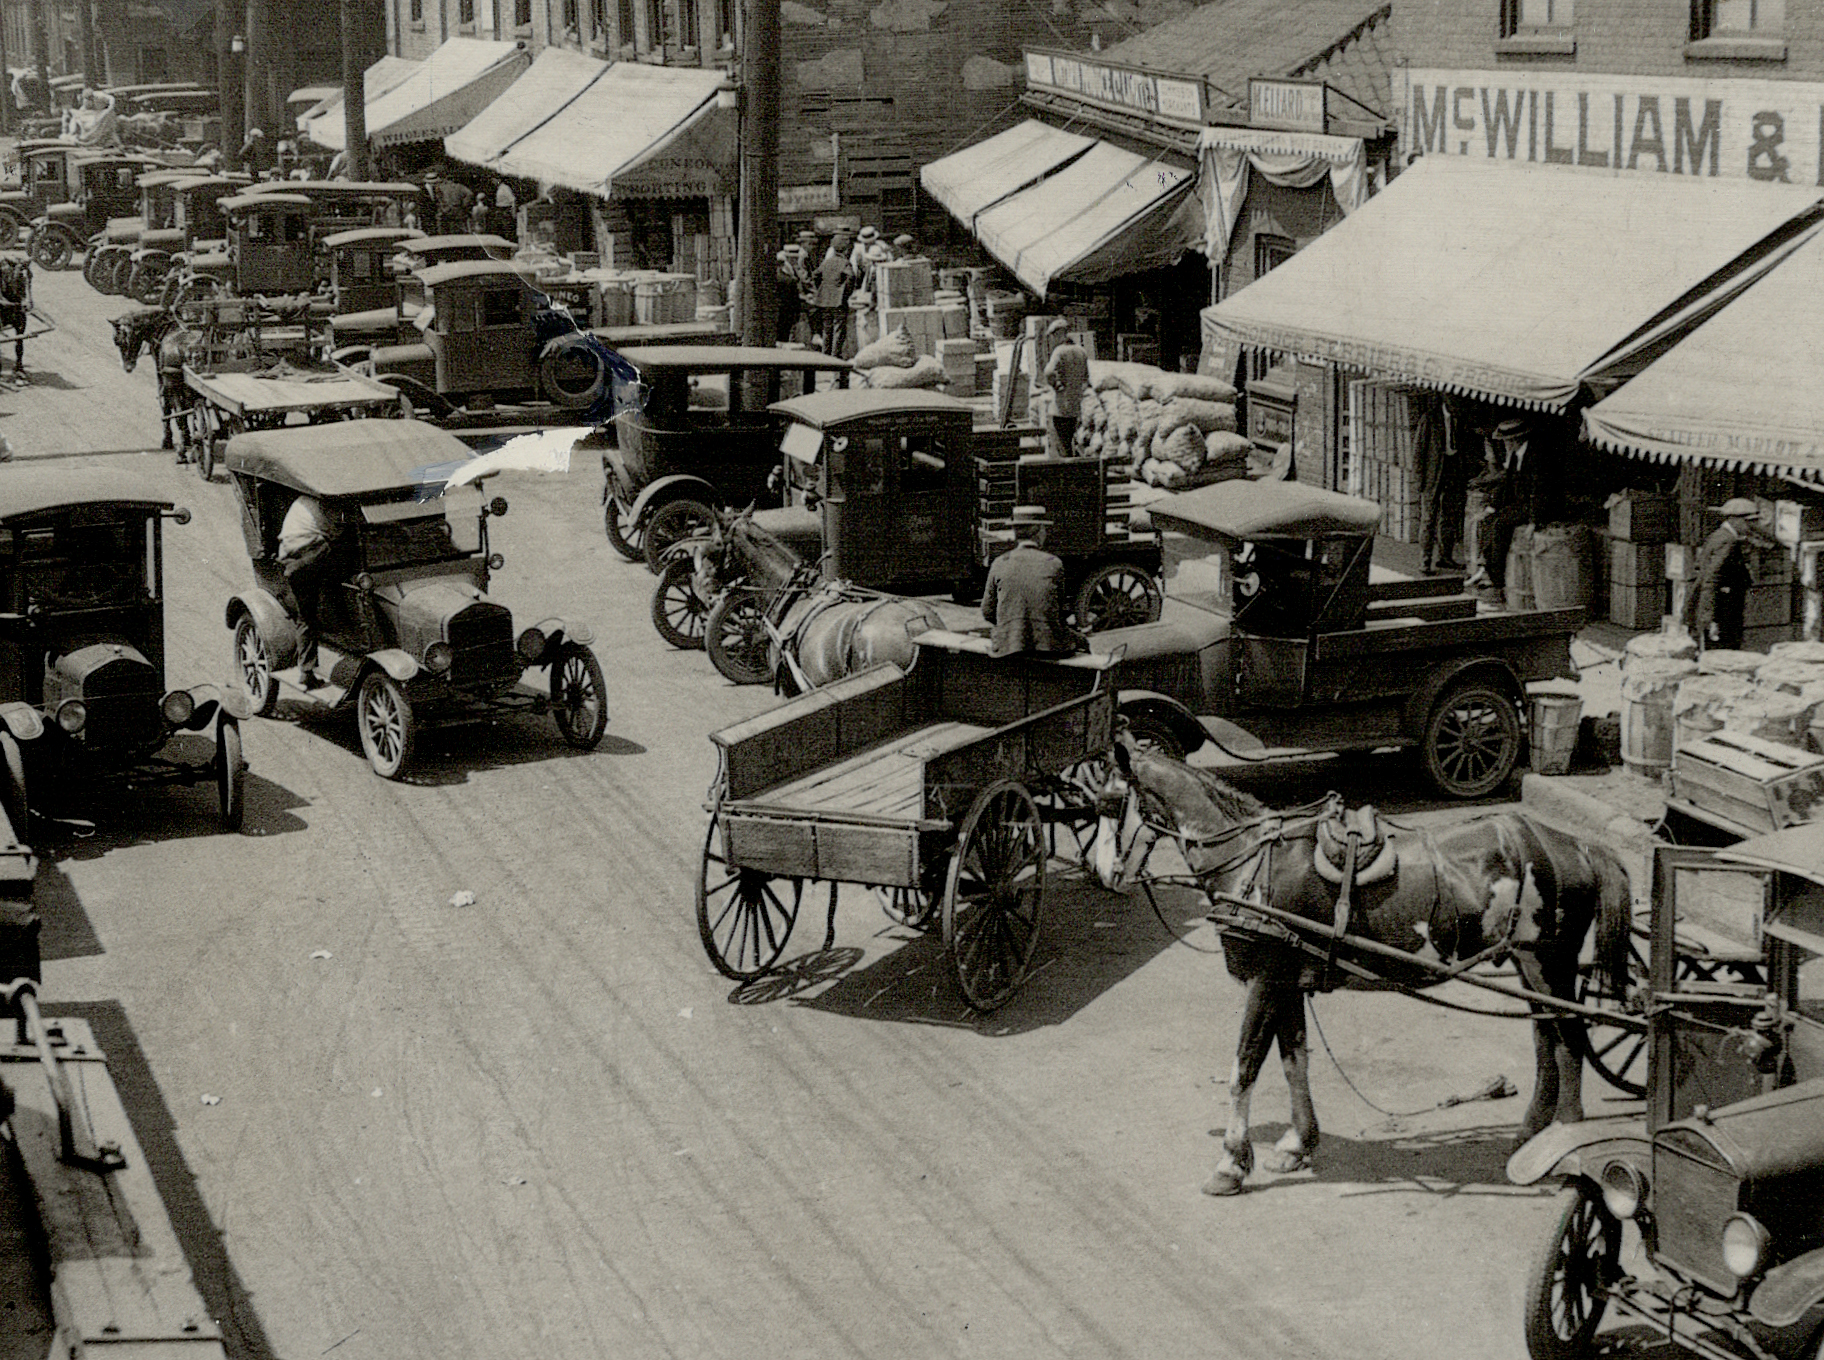 1900: Bustling market. Cars, trucks, and horse-drawn wagons competed for space at a fruit and vegetable market.